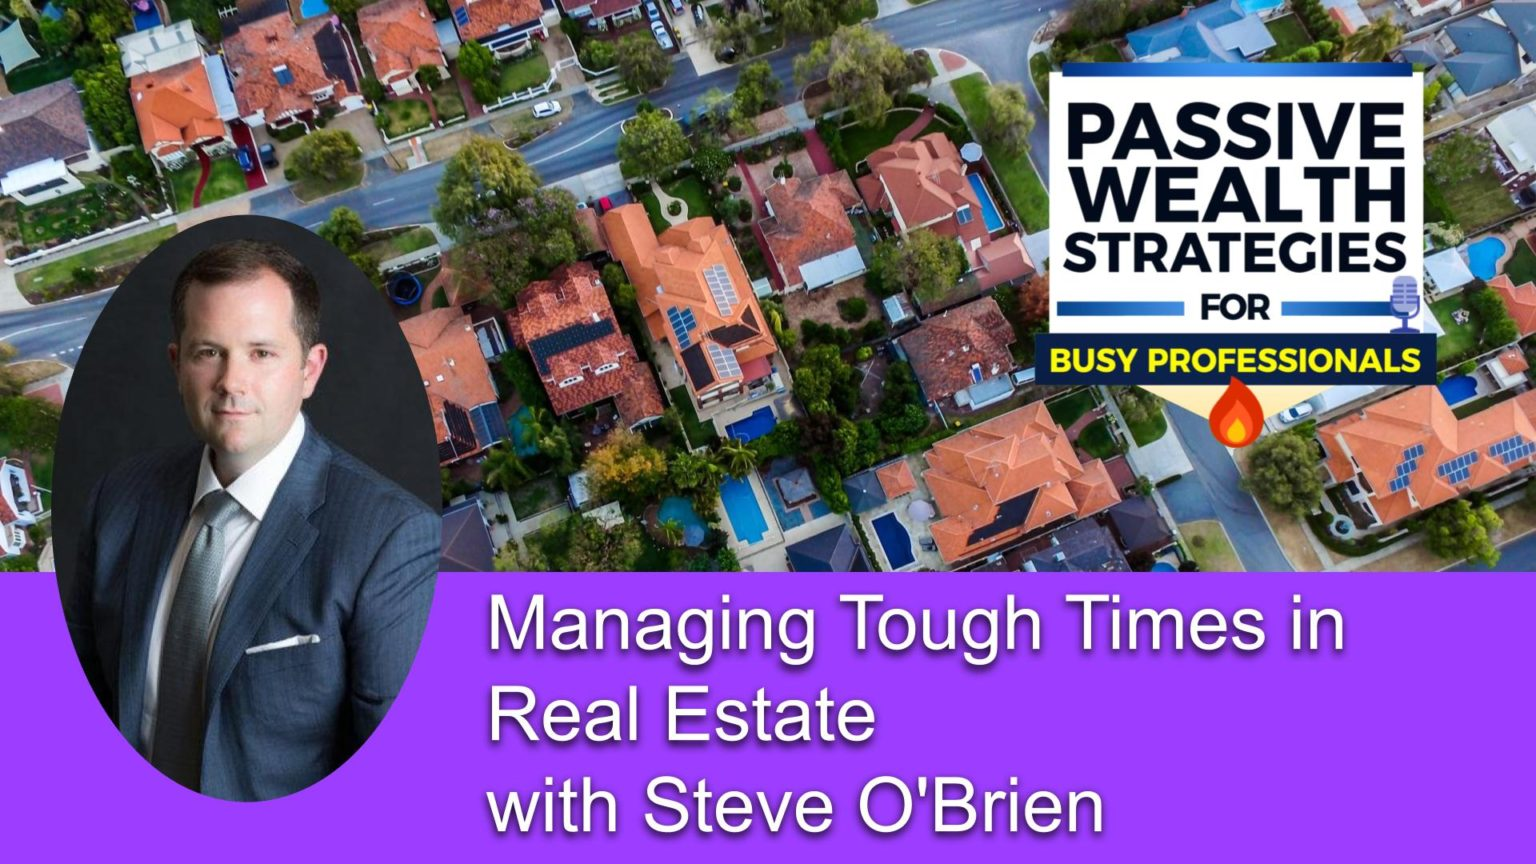 Managing tough times in real estate with Steve OBrien